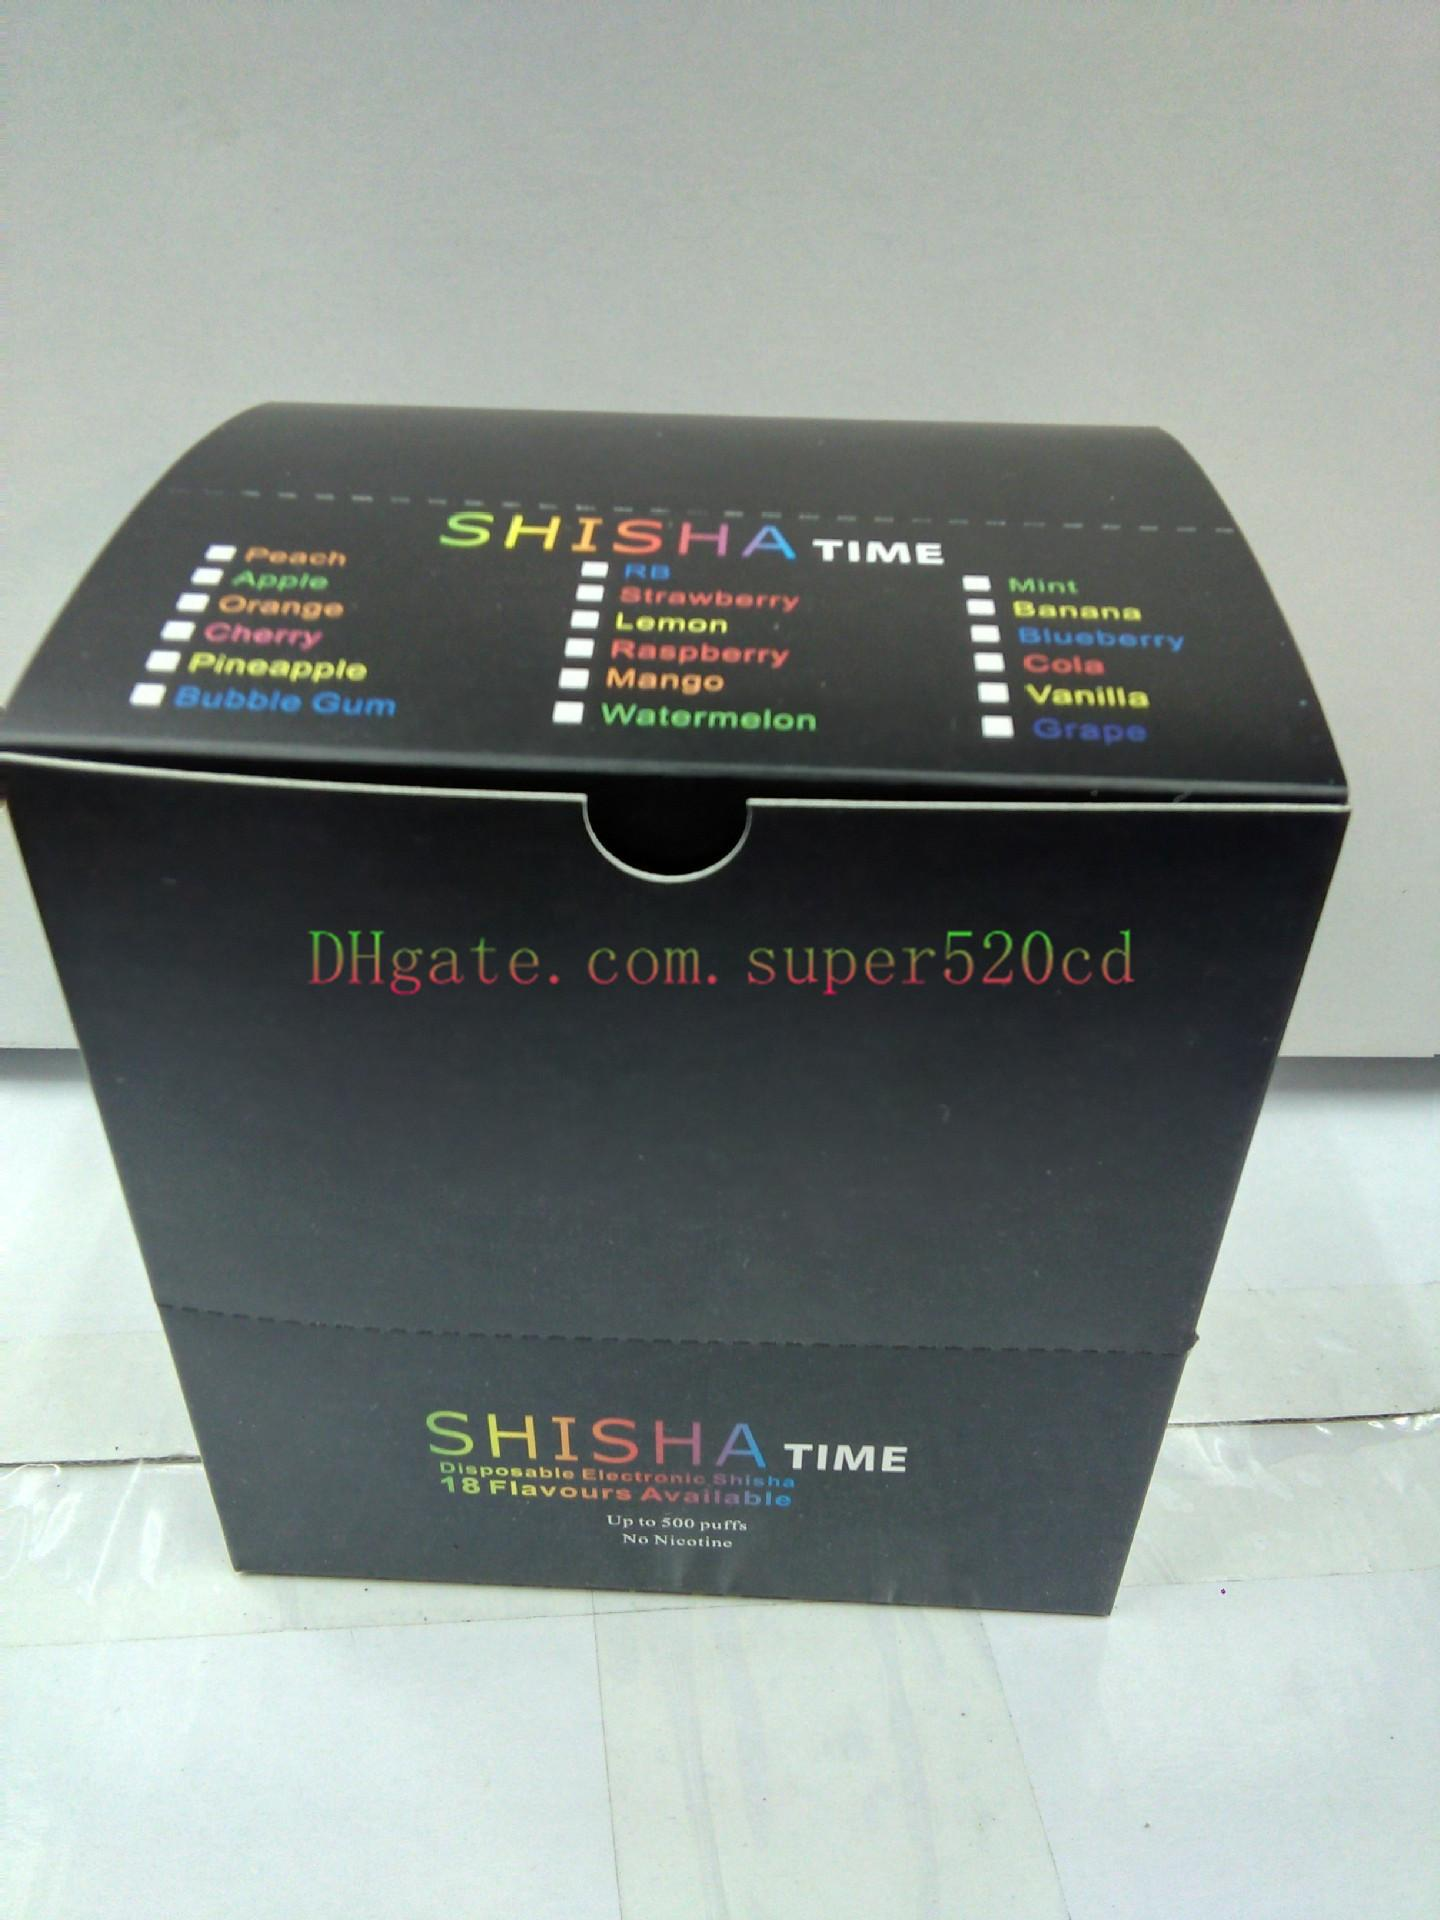 New E ShiSha Hookah Pipe Pen Disposable Electronic Cigarette Fruit Juice E Cig Stick Shisha Time 500 Puffs